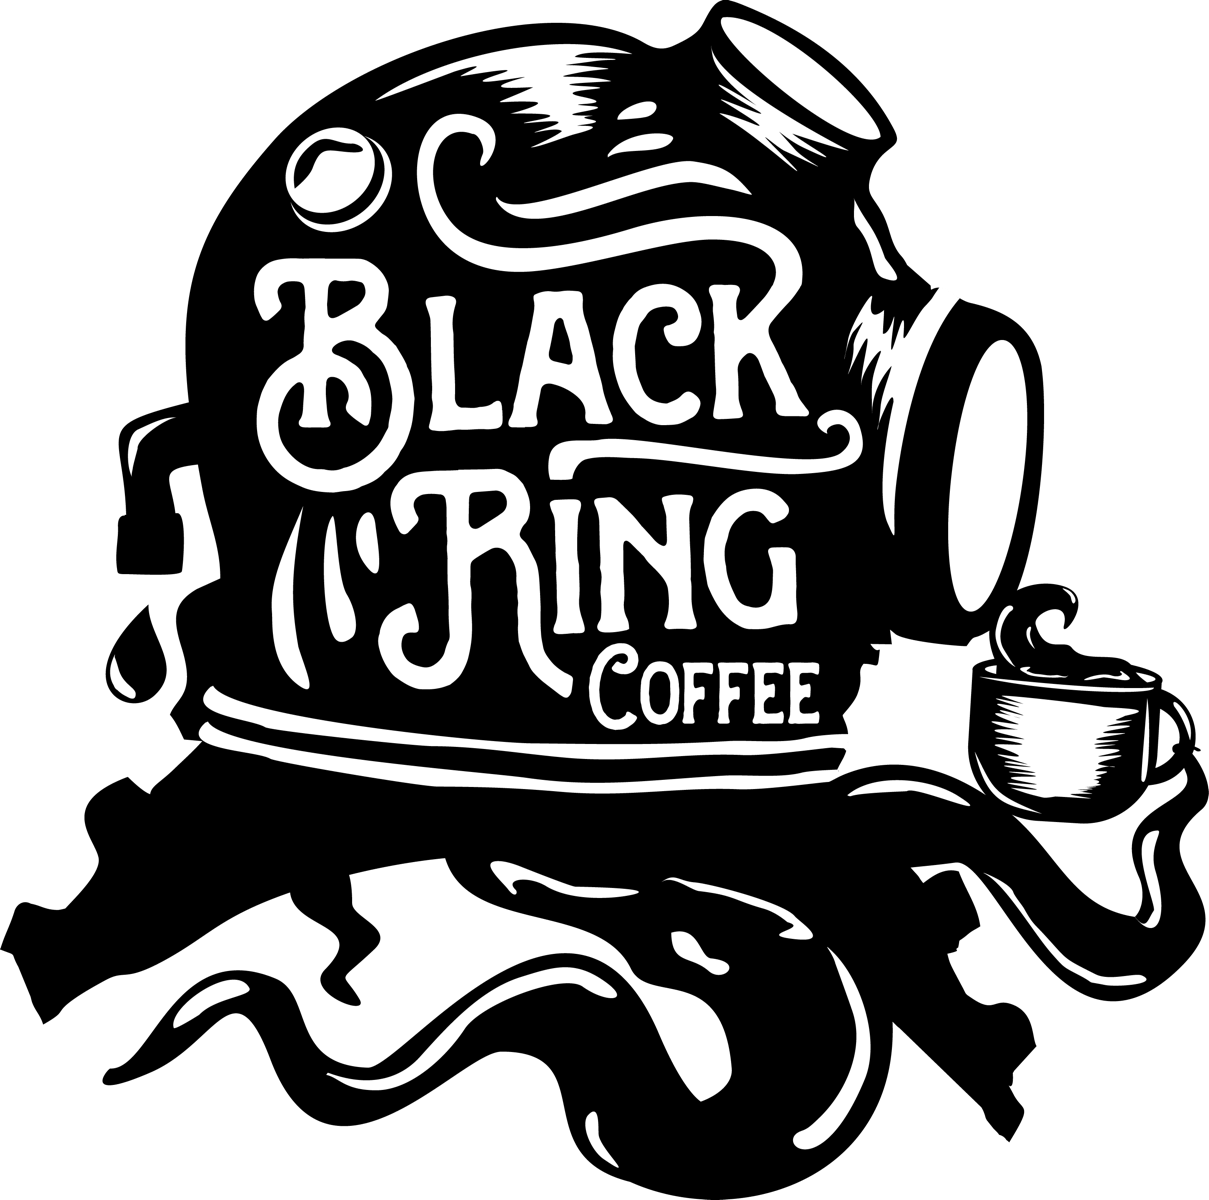 black scuba diving coffee helmet logo design